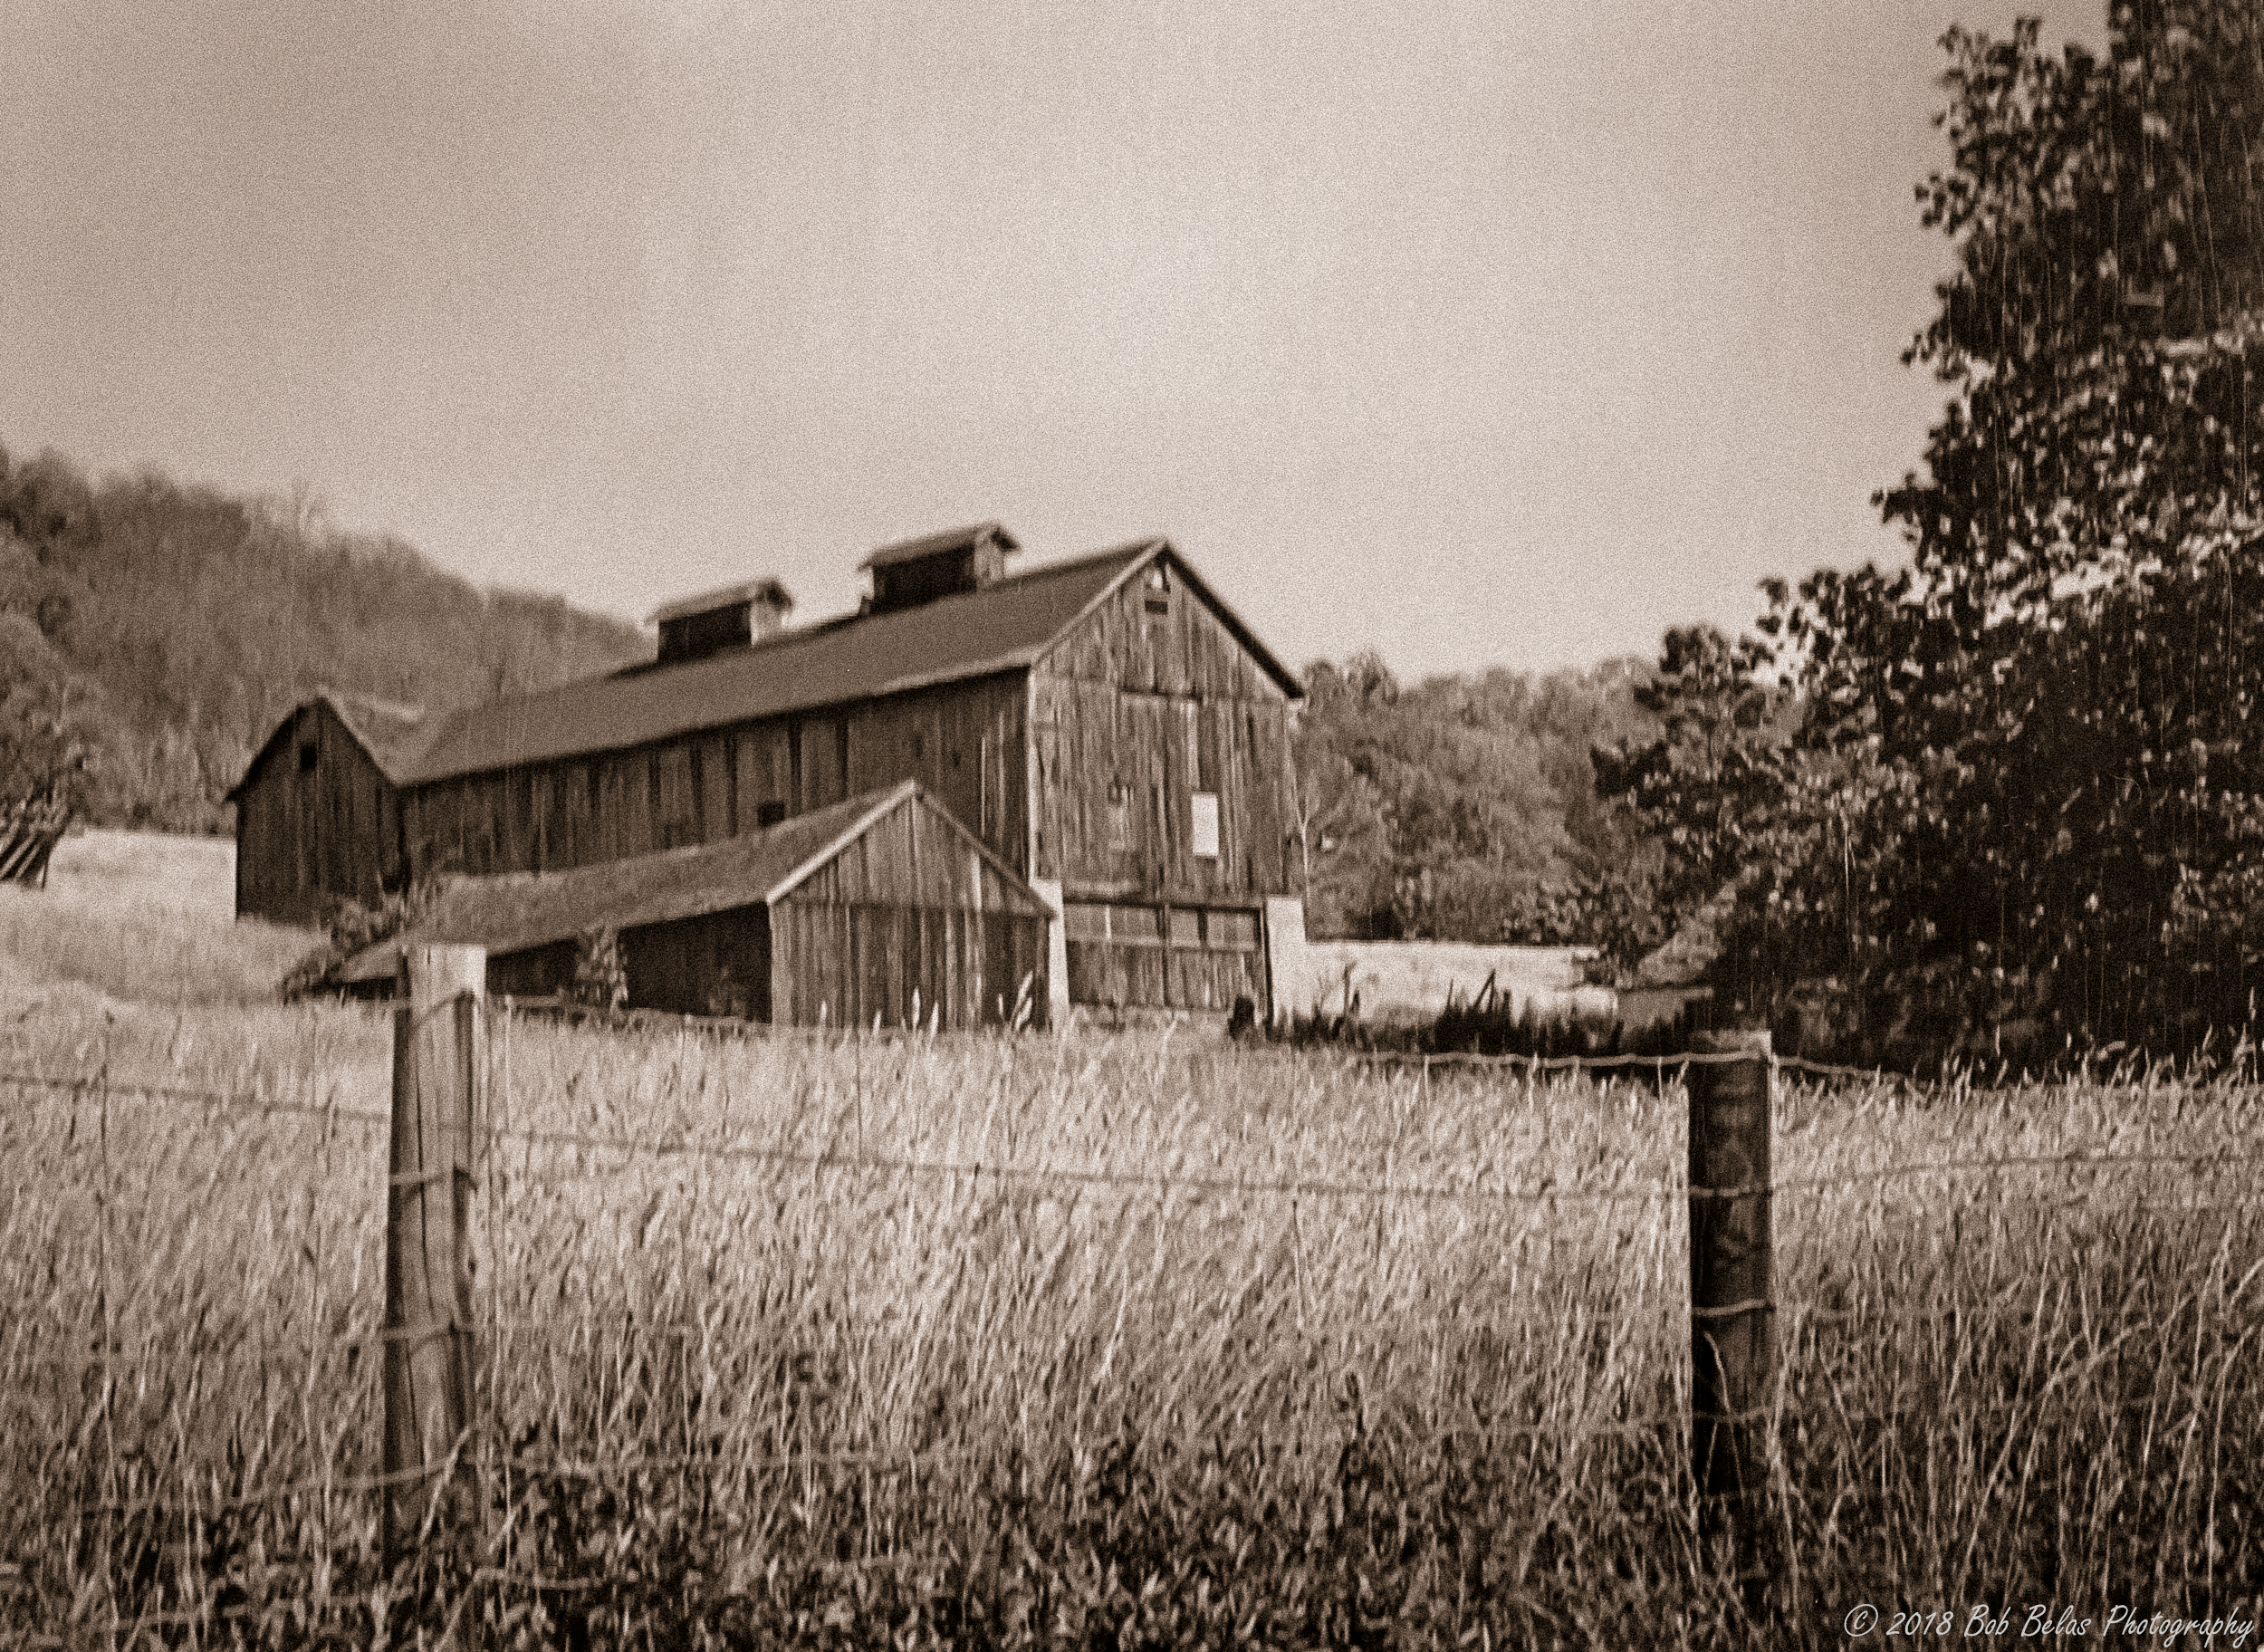 The Old Barn, monochrome